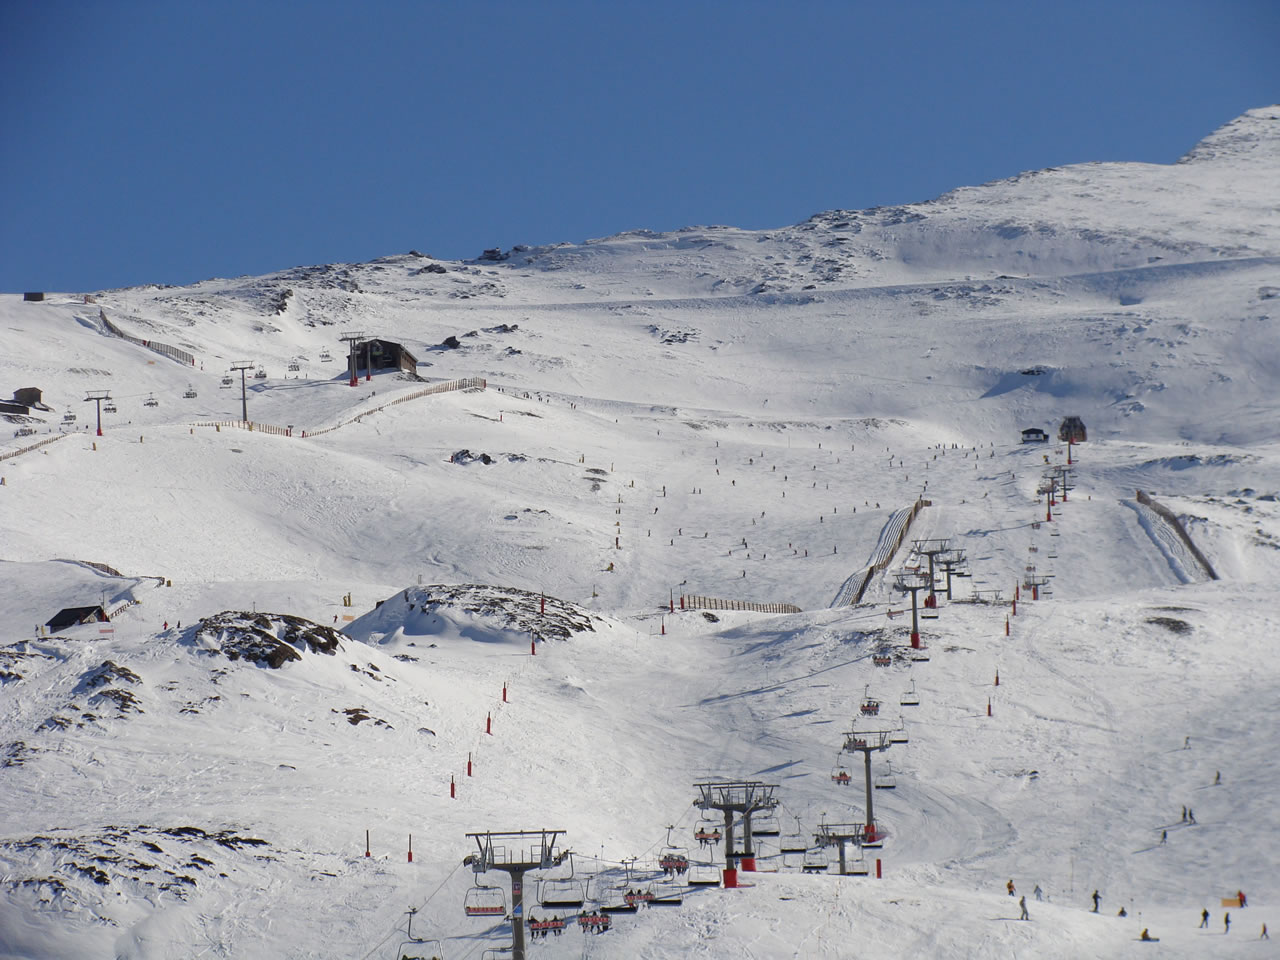 Sierra nevada ski resort costa del sol news - Hotel lodge sierra nevada ...